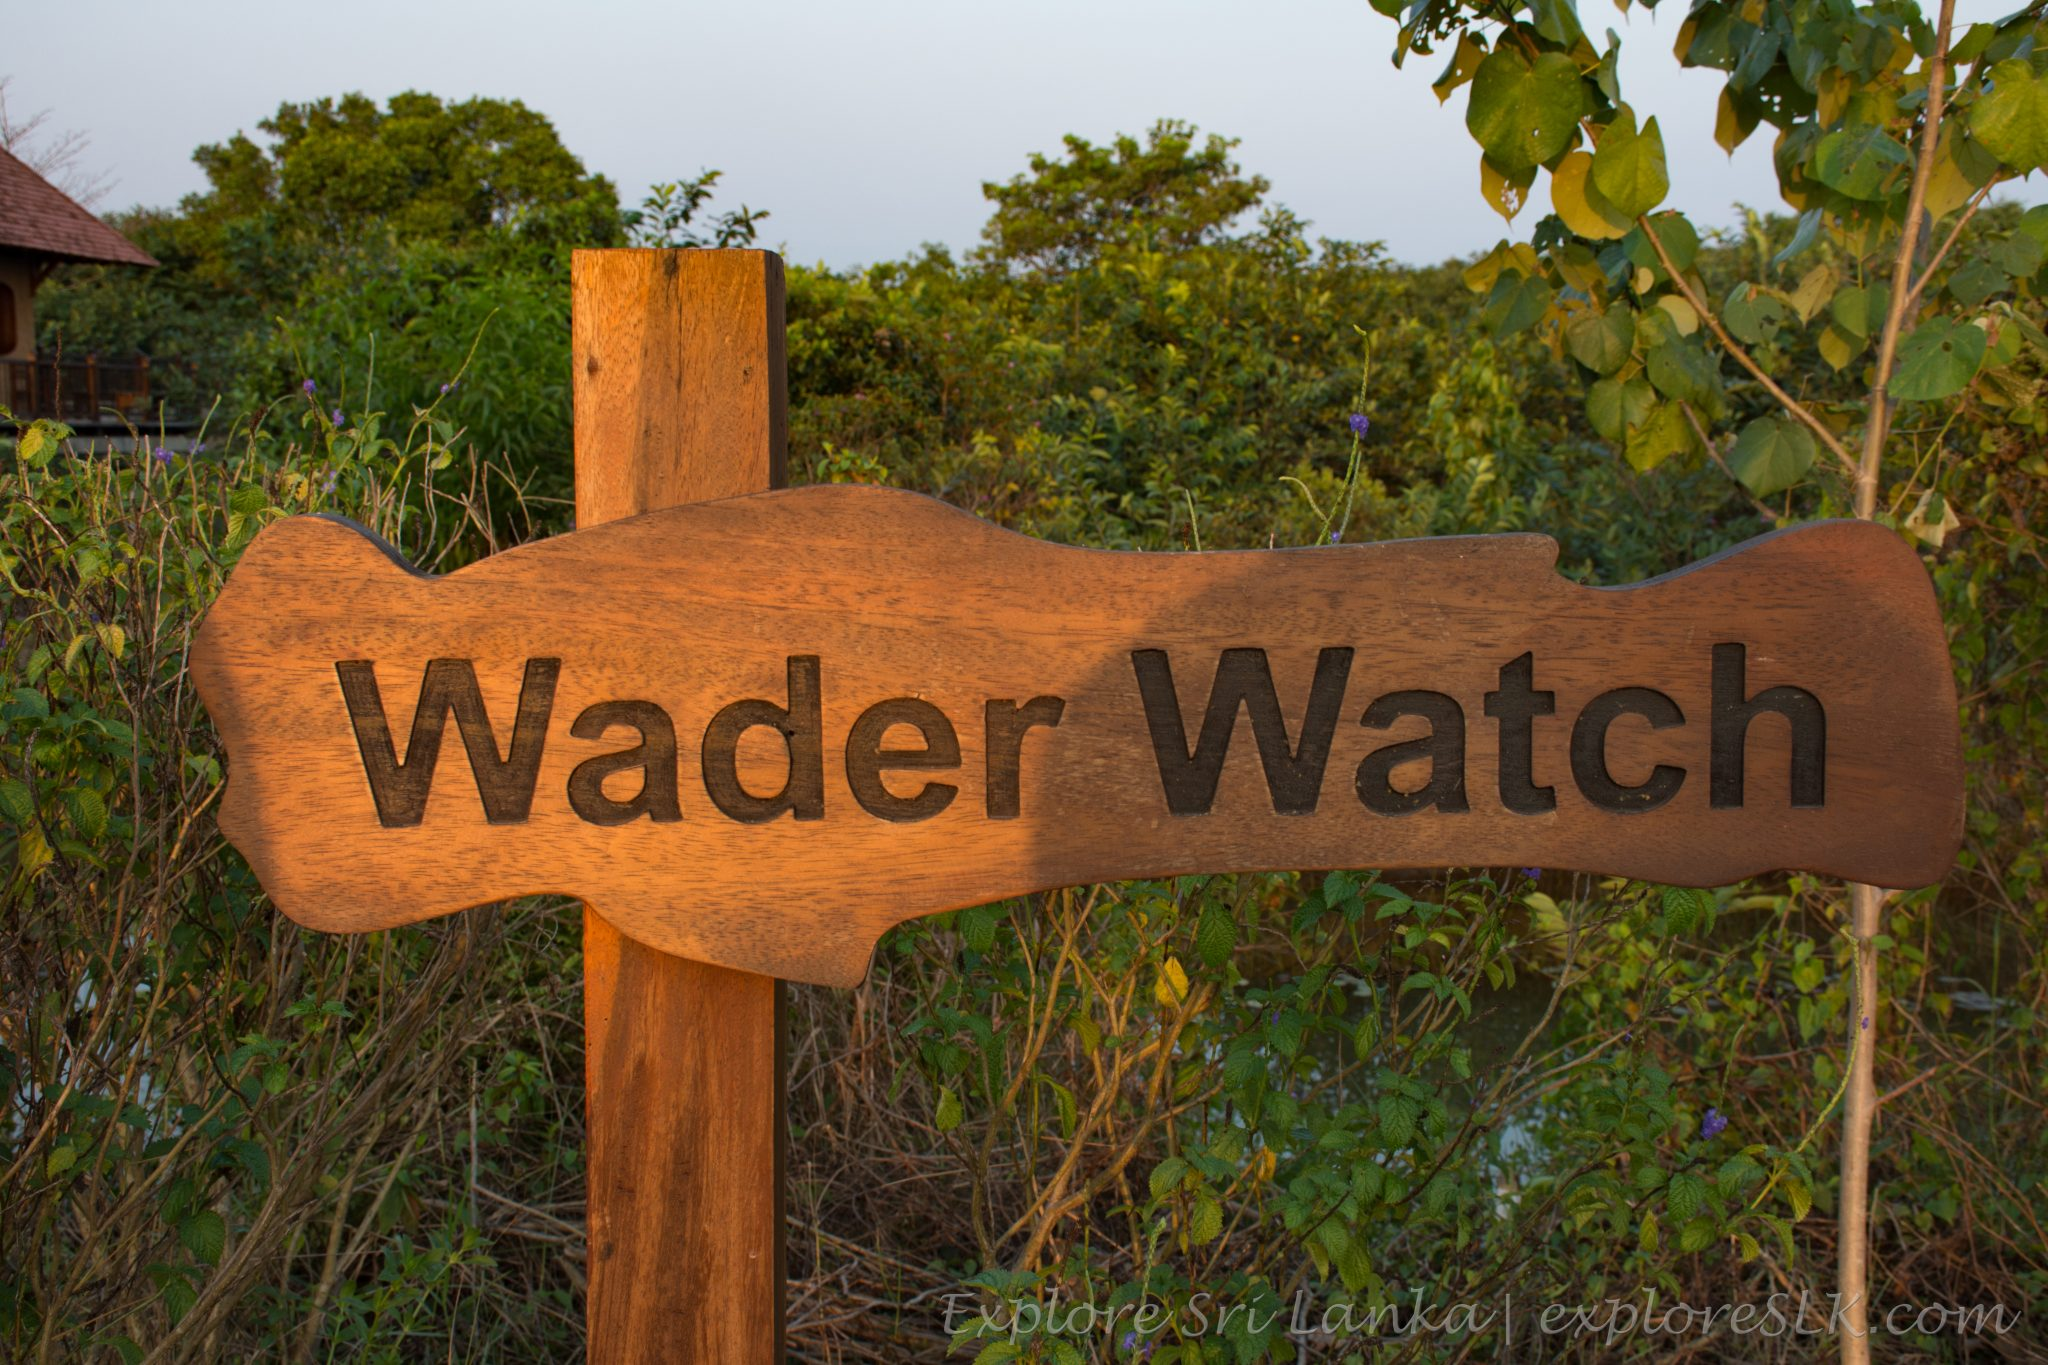 Wader watch - sign board